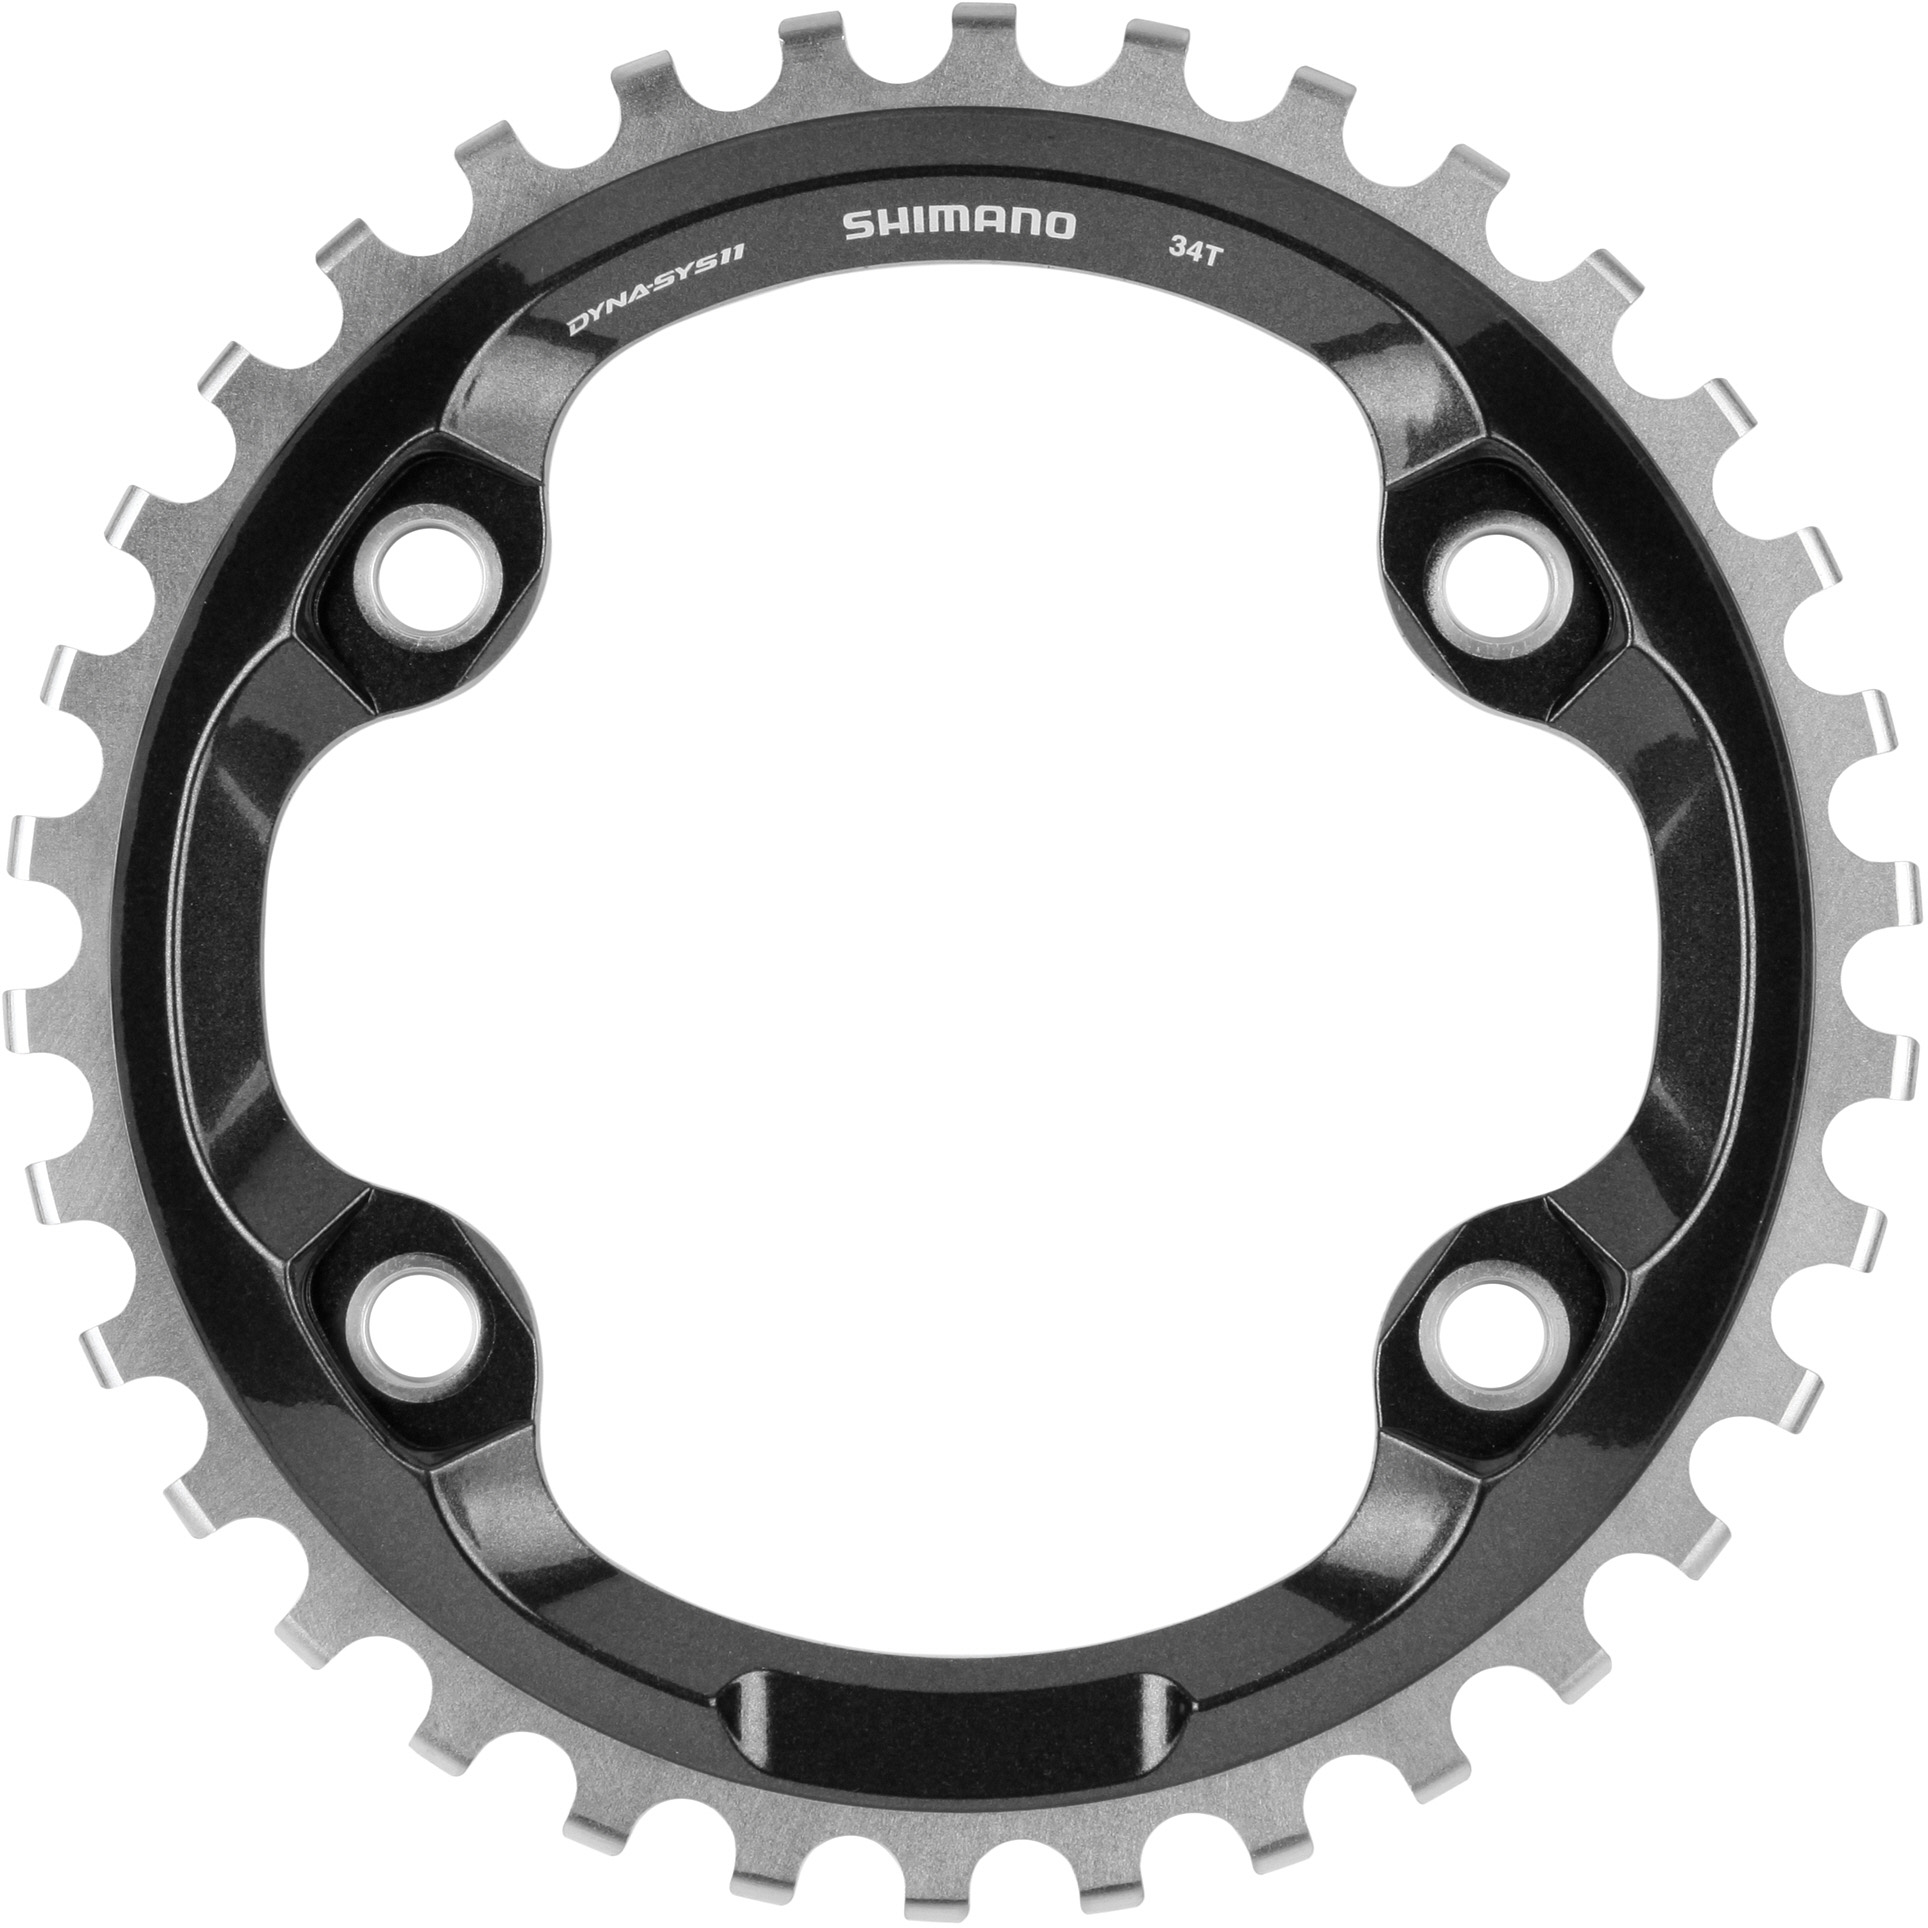 Shimano Deore XT M8000 Chainring | chainrings_component